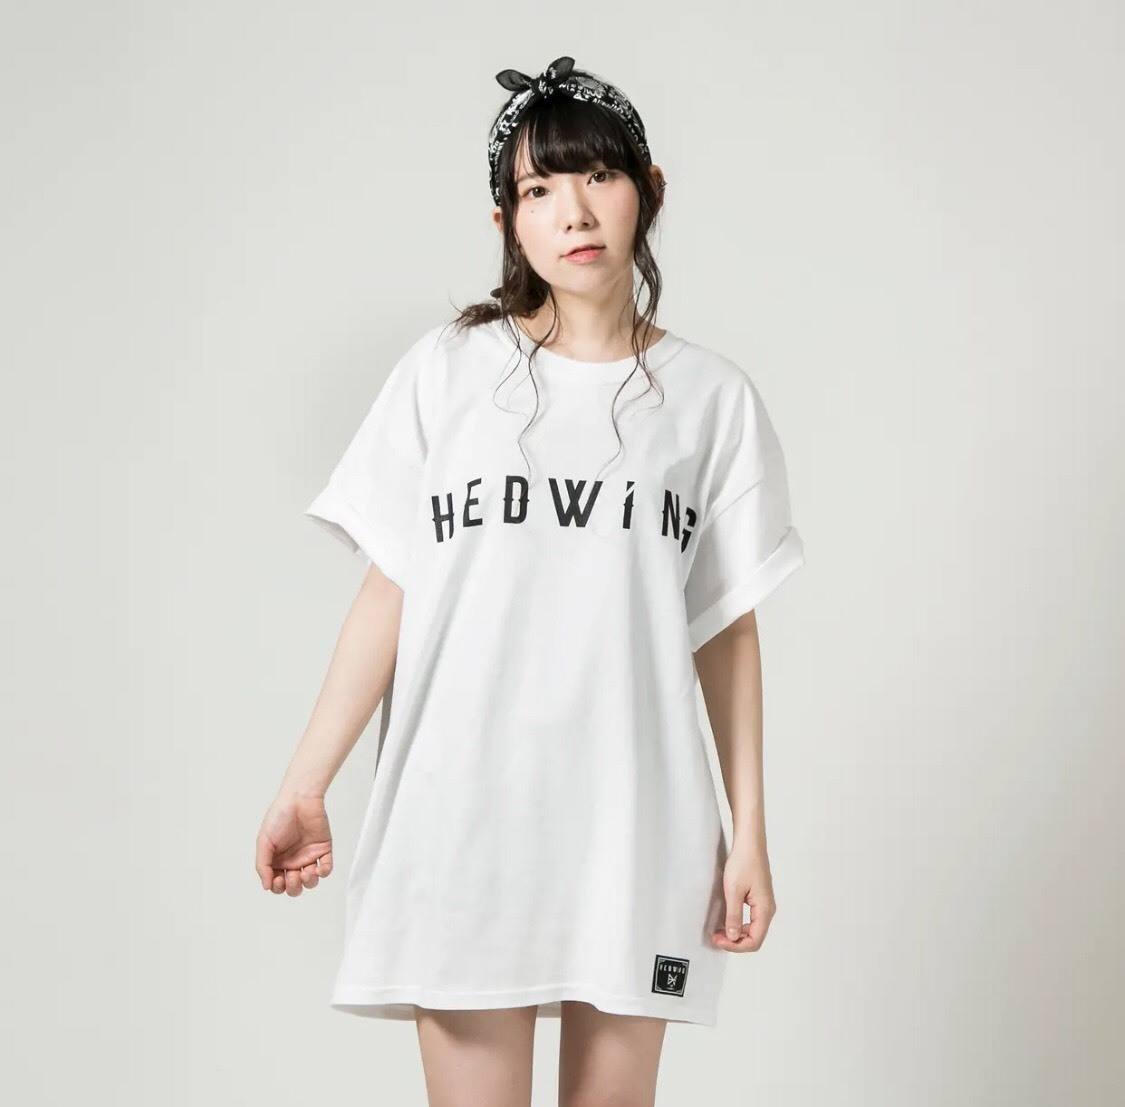 <HEDWiNG Tシャツプラン>